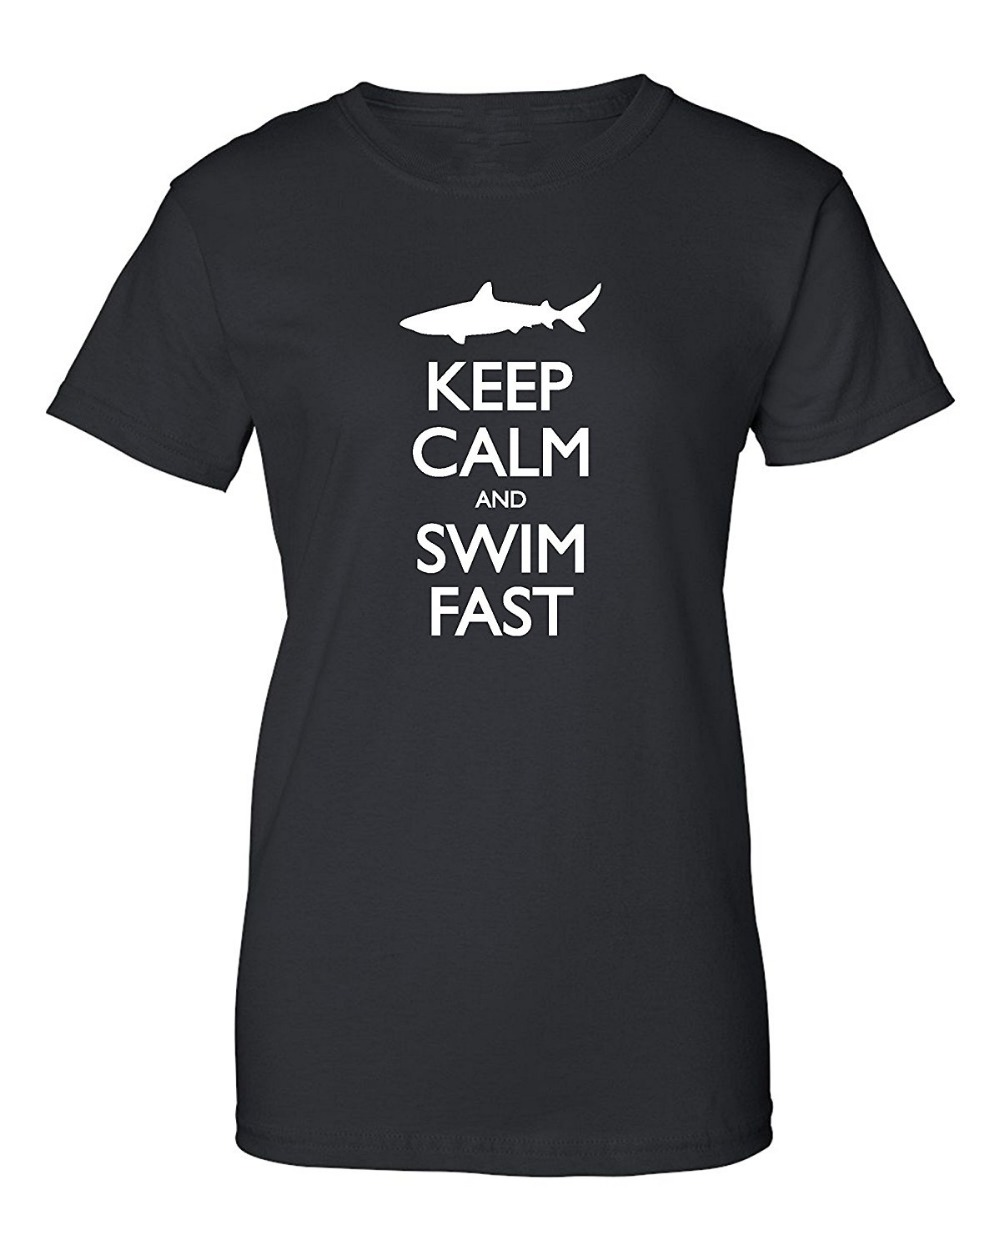 Design your own t-shirt female - Design Your Own T Shirt Casual Women Crew Neck Short Sleeve Keep Calm And Swimer